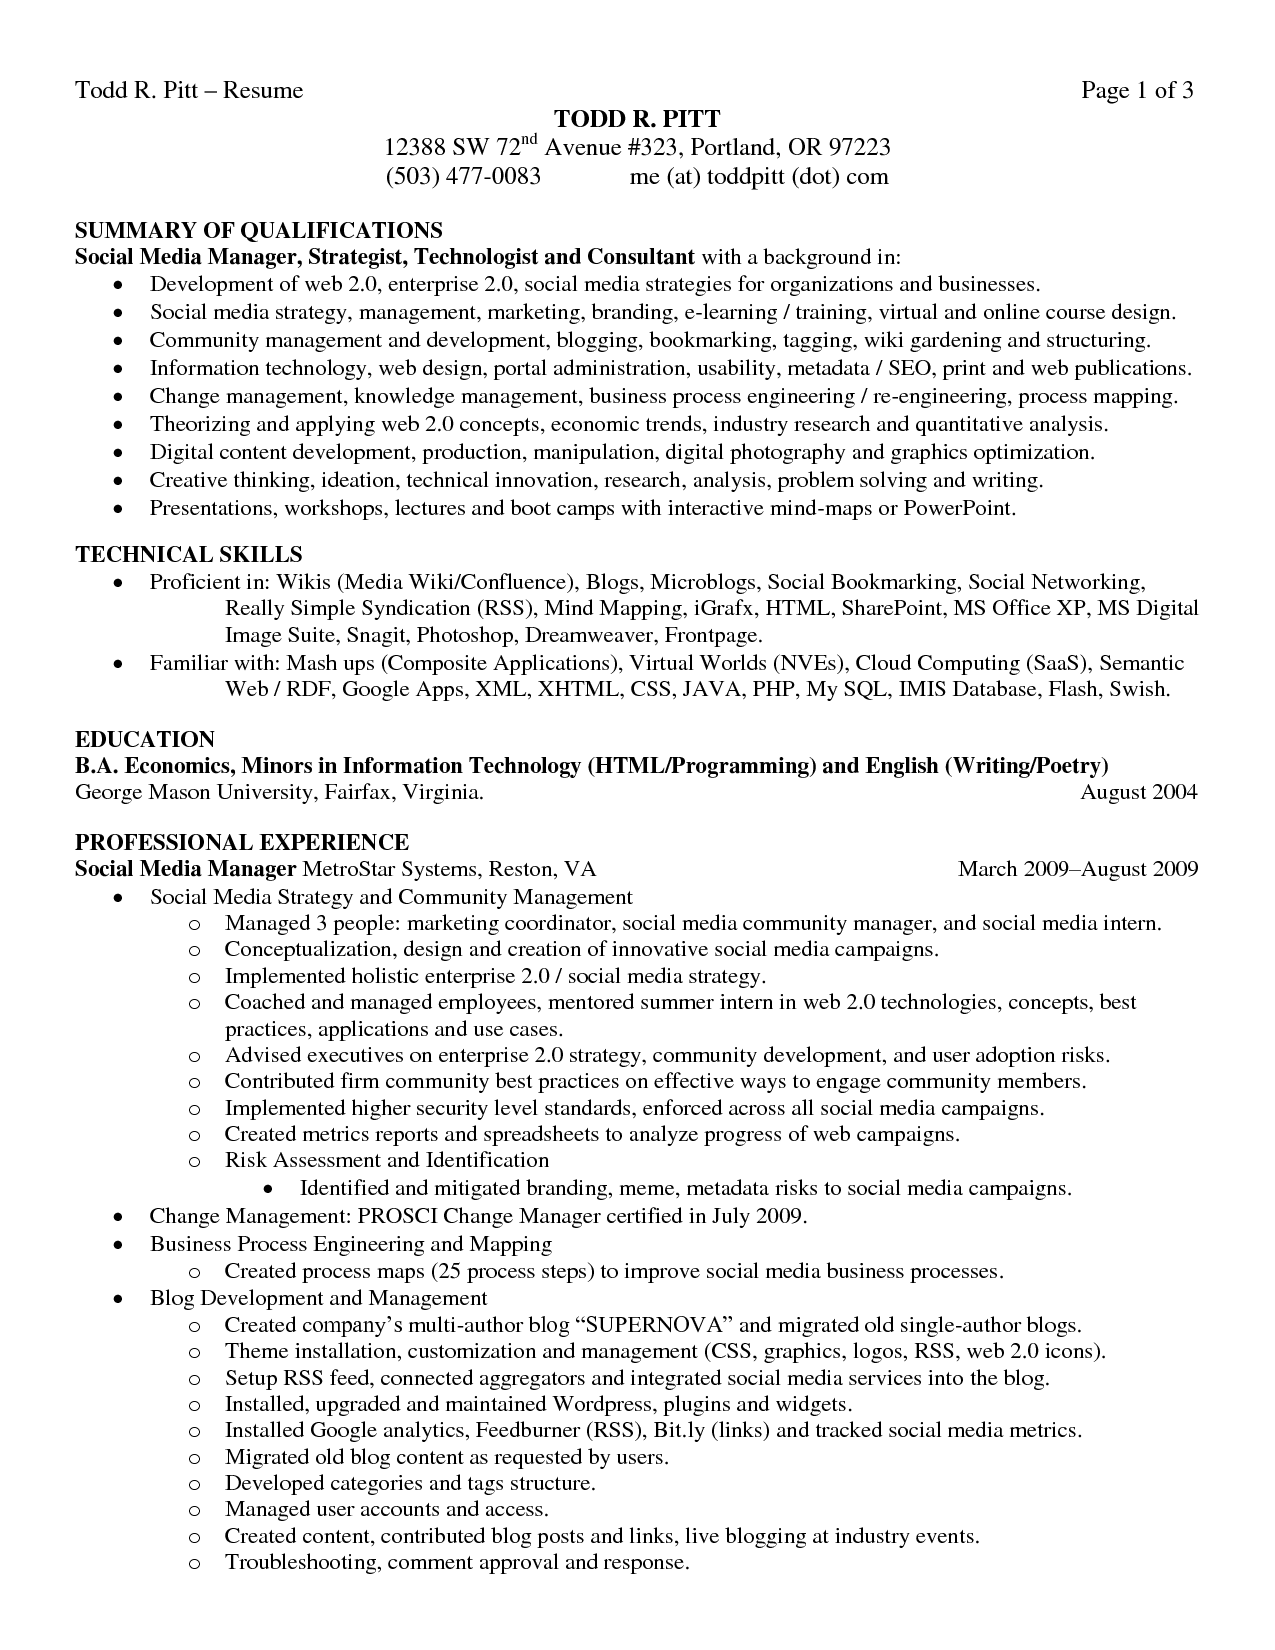 Recent Graduate Resume Summary Best Ideas Free Sample Template